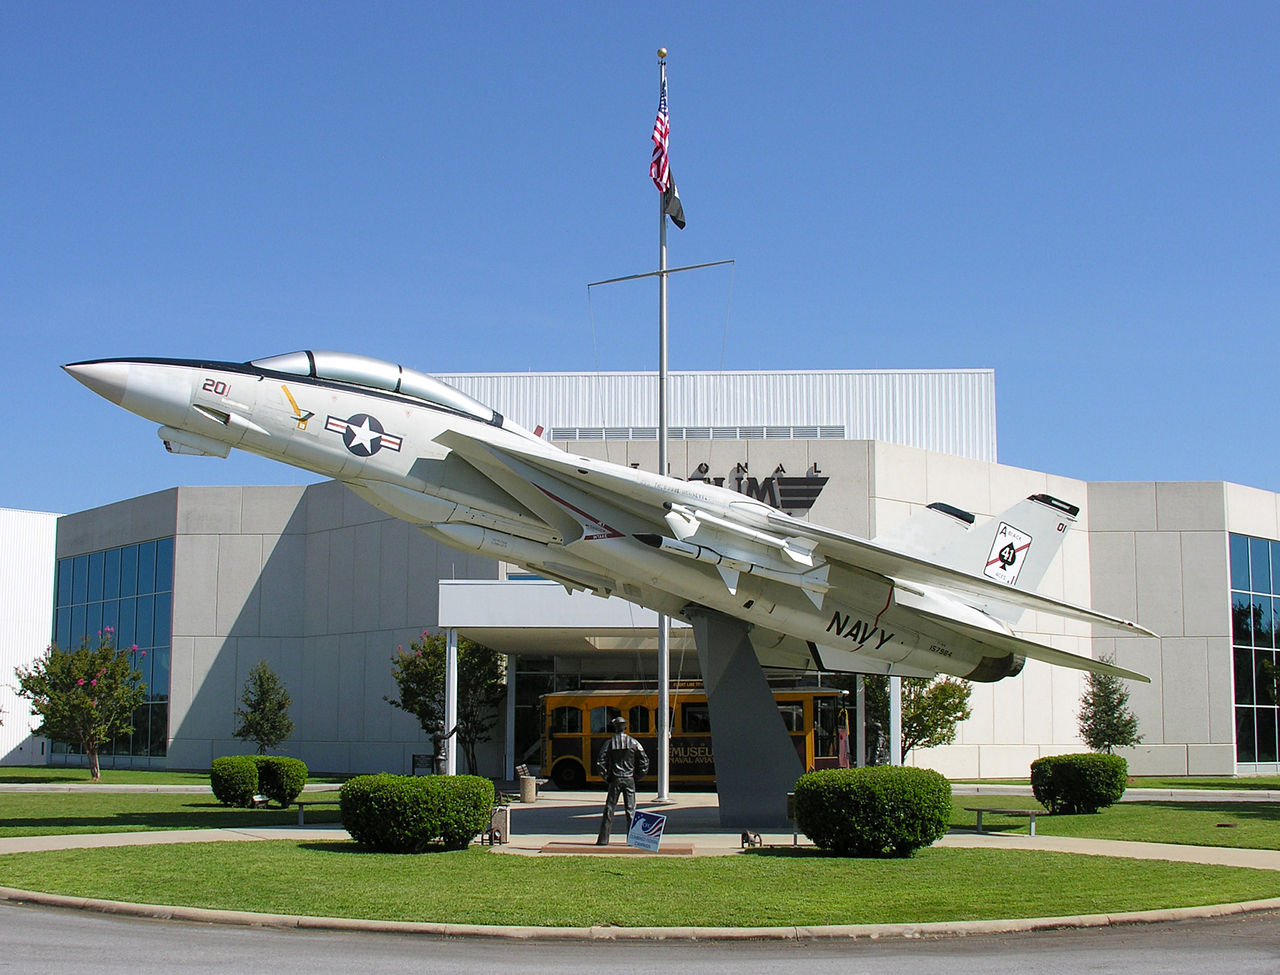 National Naval Aviation Museum - Top-Rated Sight-Seeing Destination in Pensacola